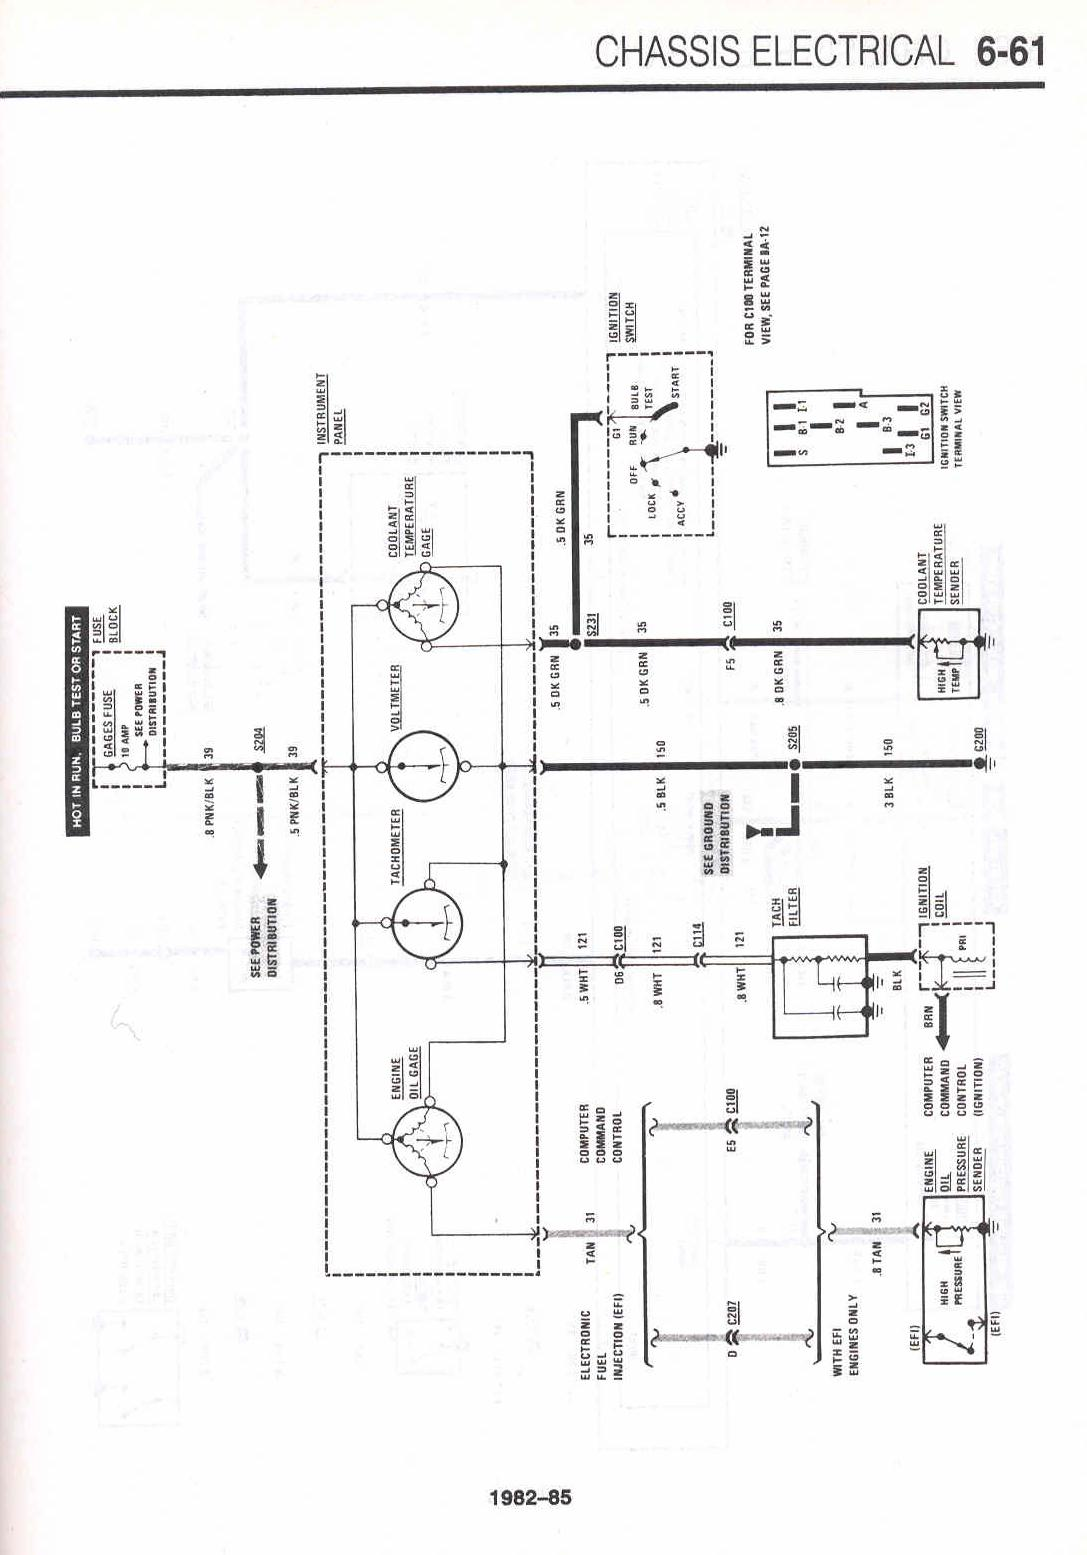 P28 Ecu Vtec Wiring Diagram. Diagrams. Auto Fuse Box Diagram